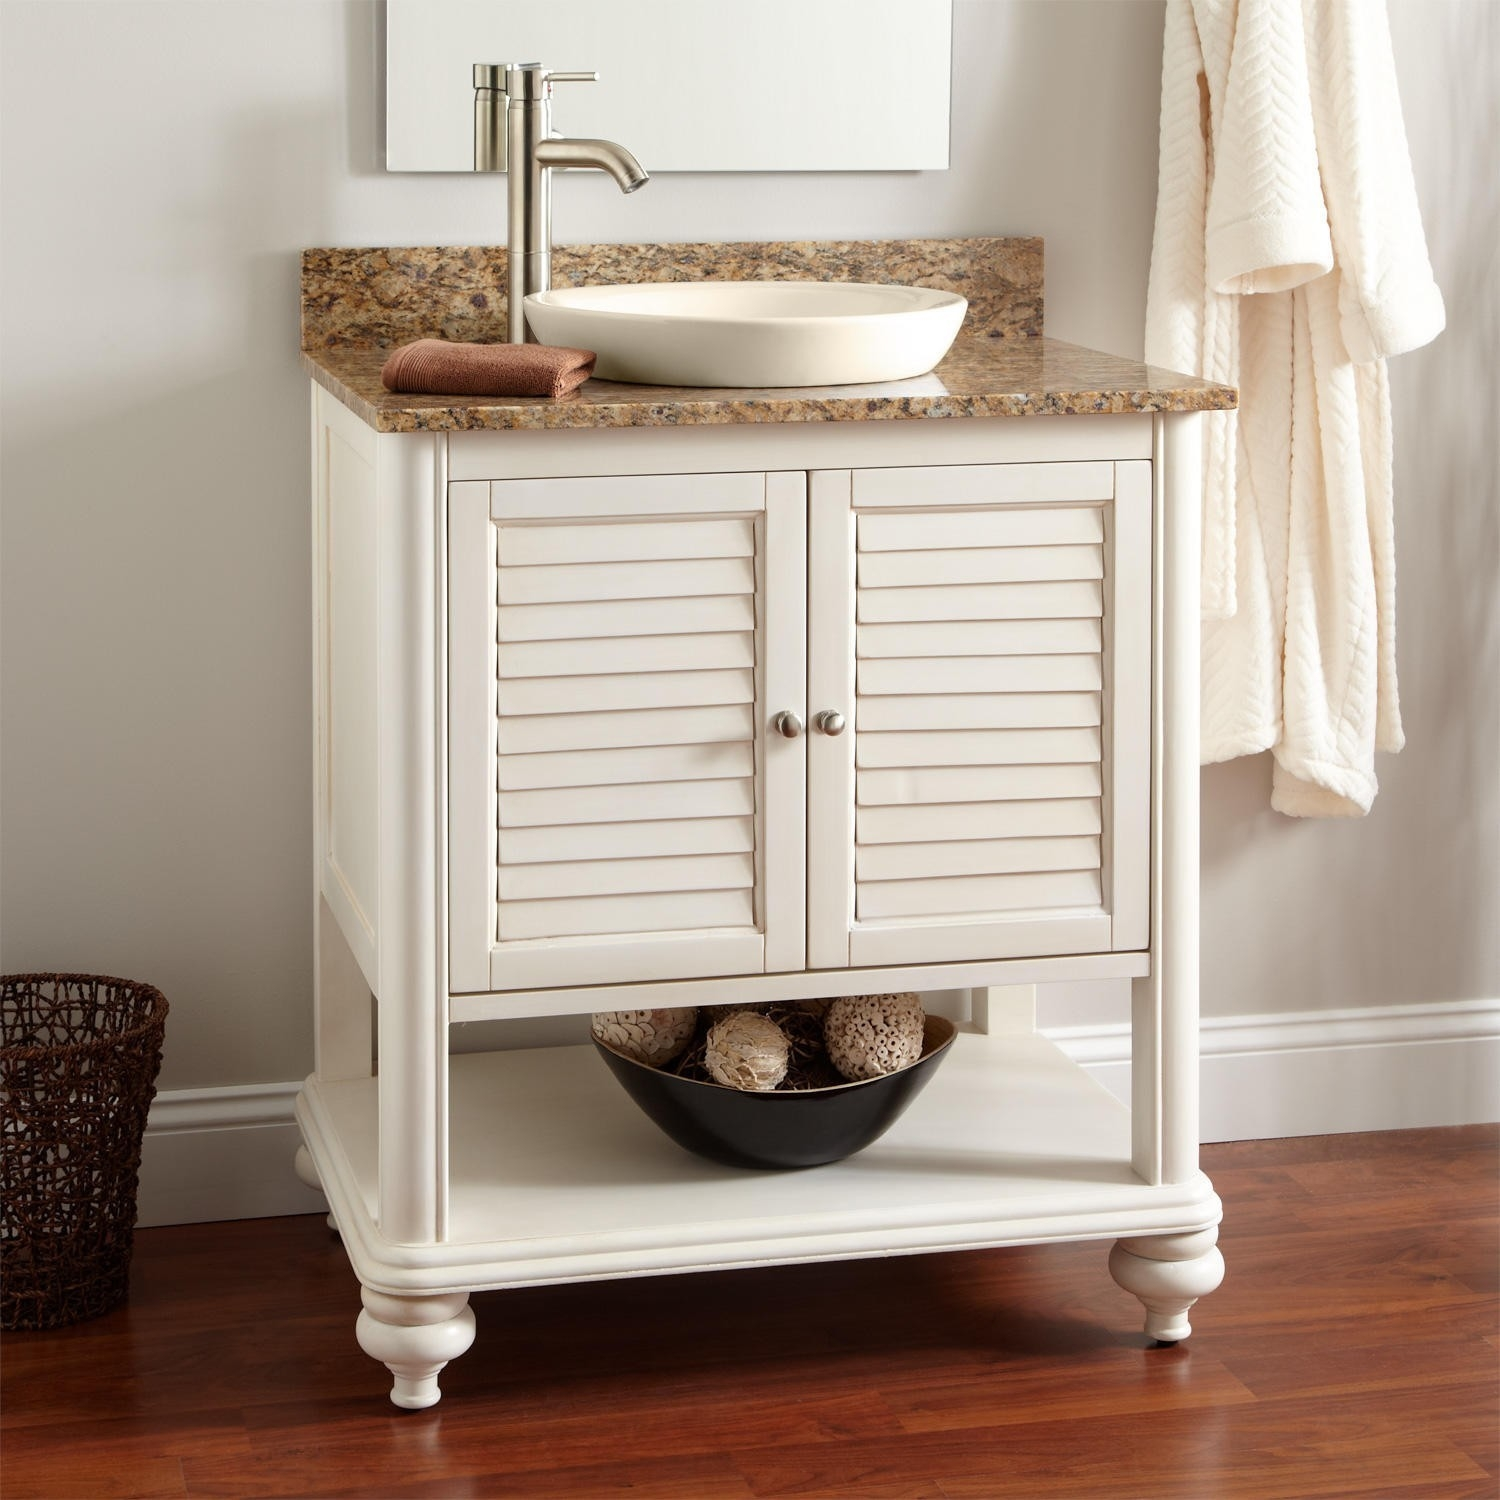 61 Inch Wide Bathroom Vanity | Bathroom Decoration